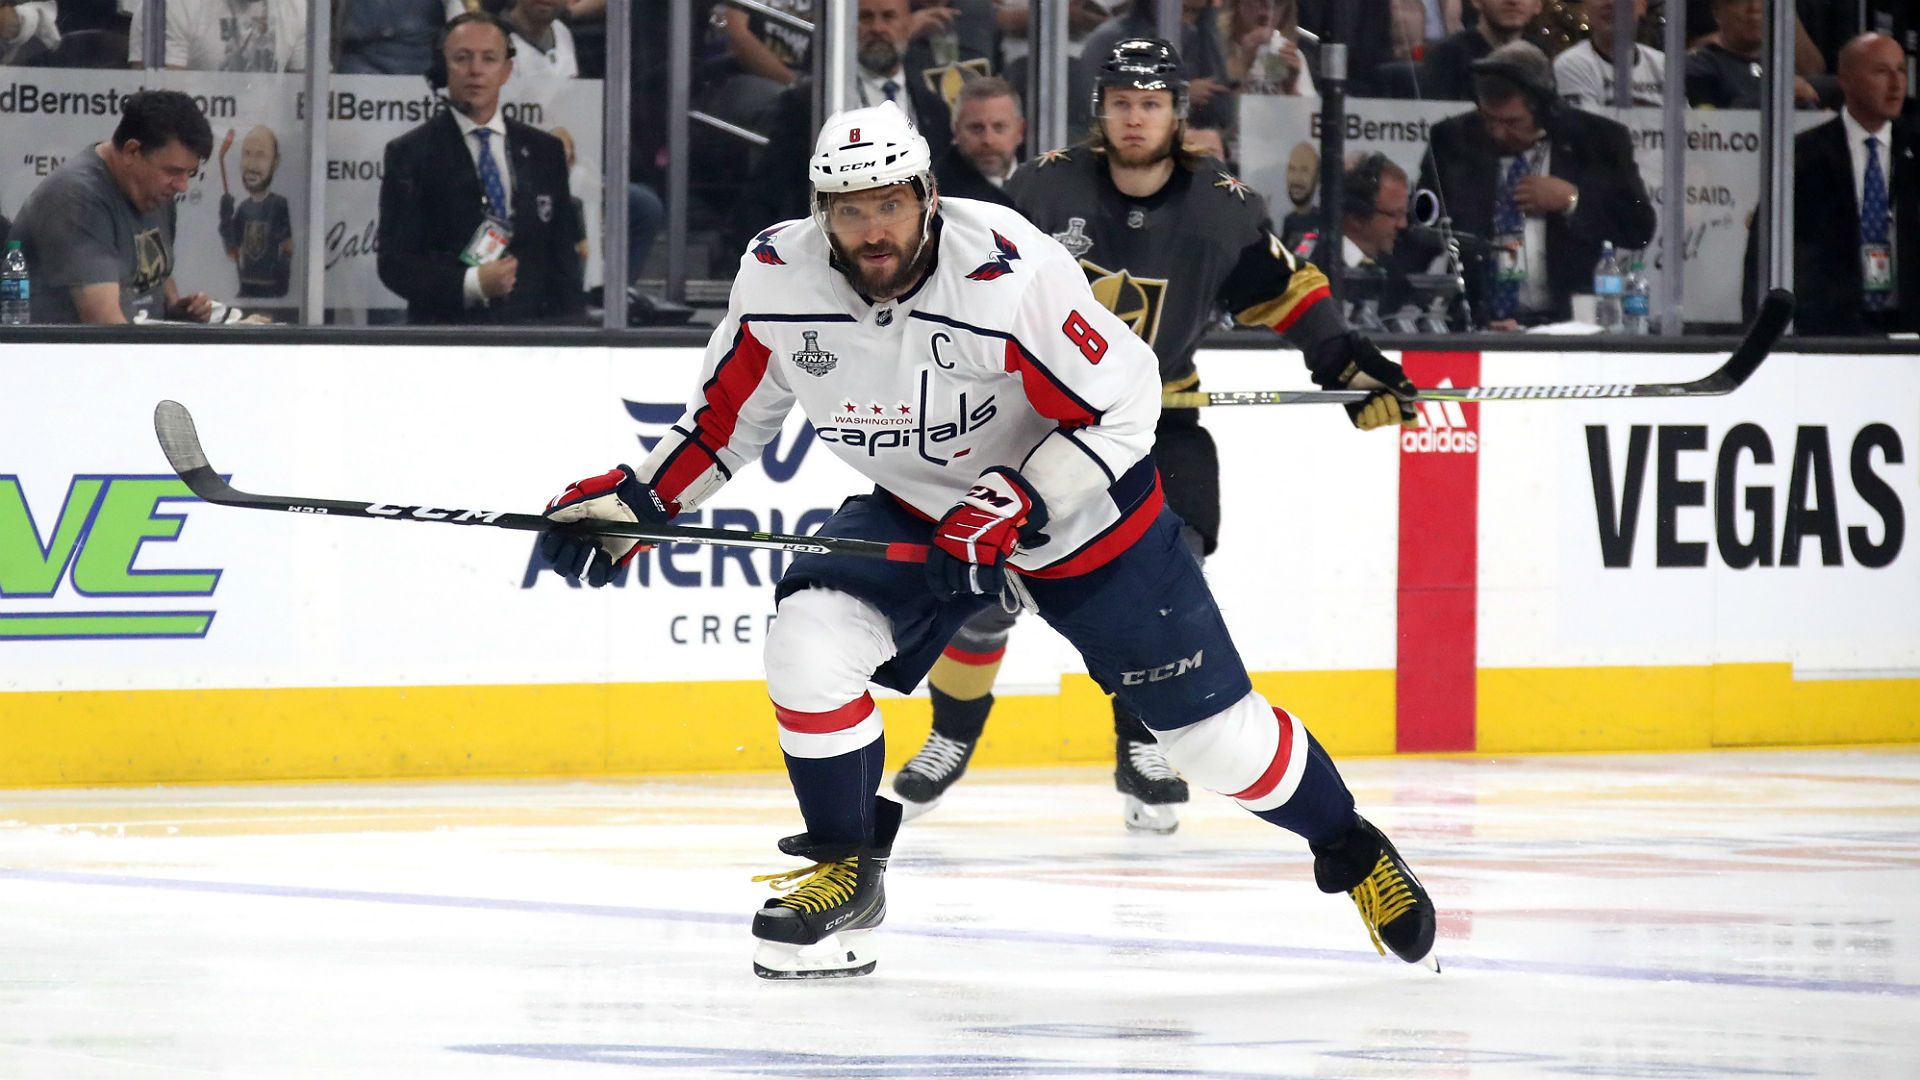 Capitals on verge of Cup after blowing out Golden Knights 6-2